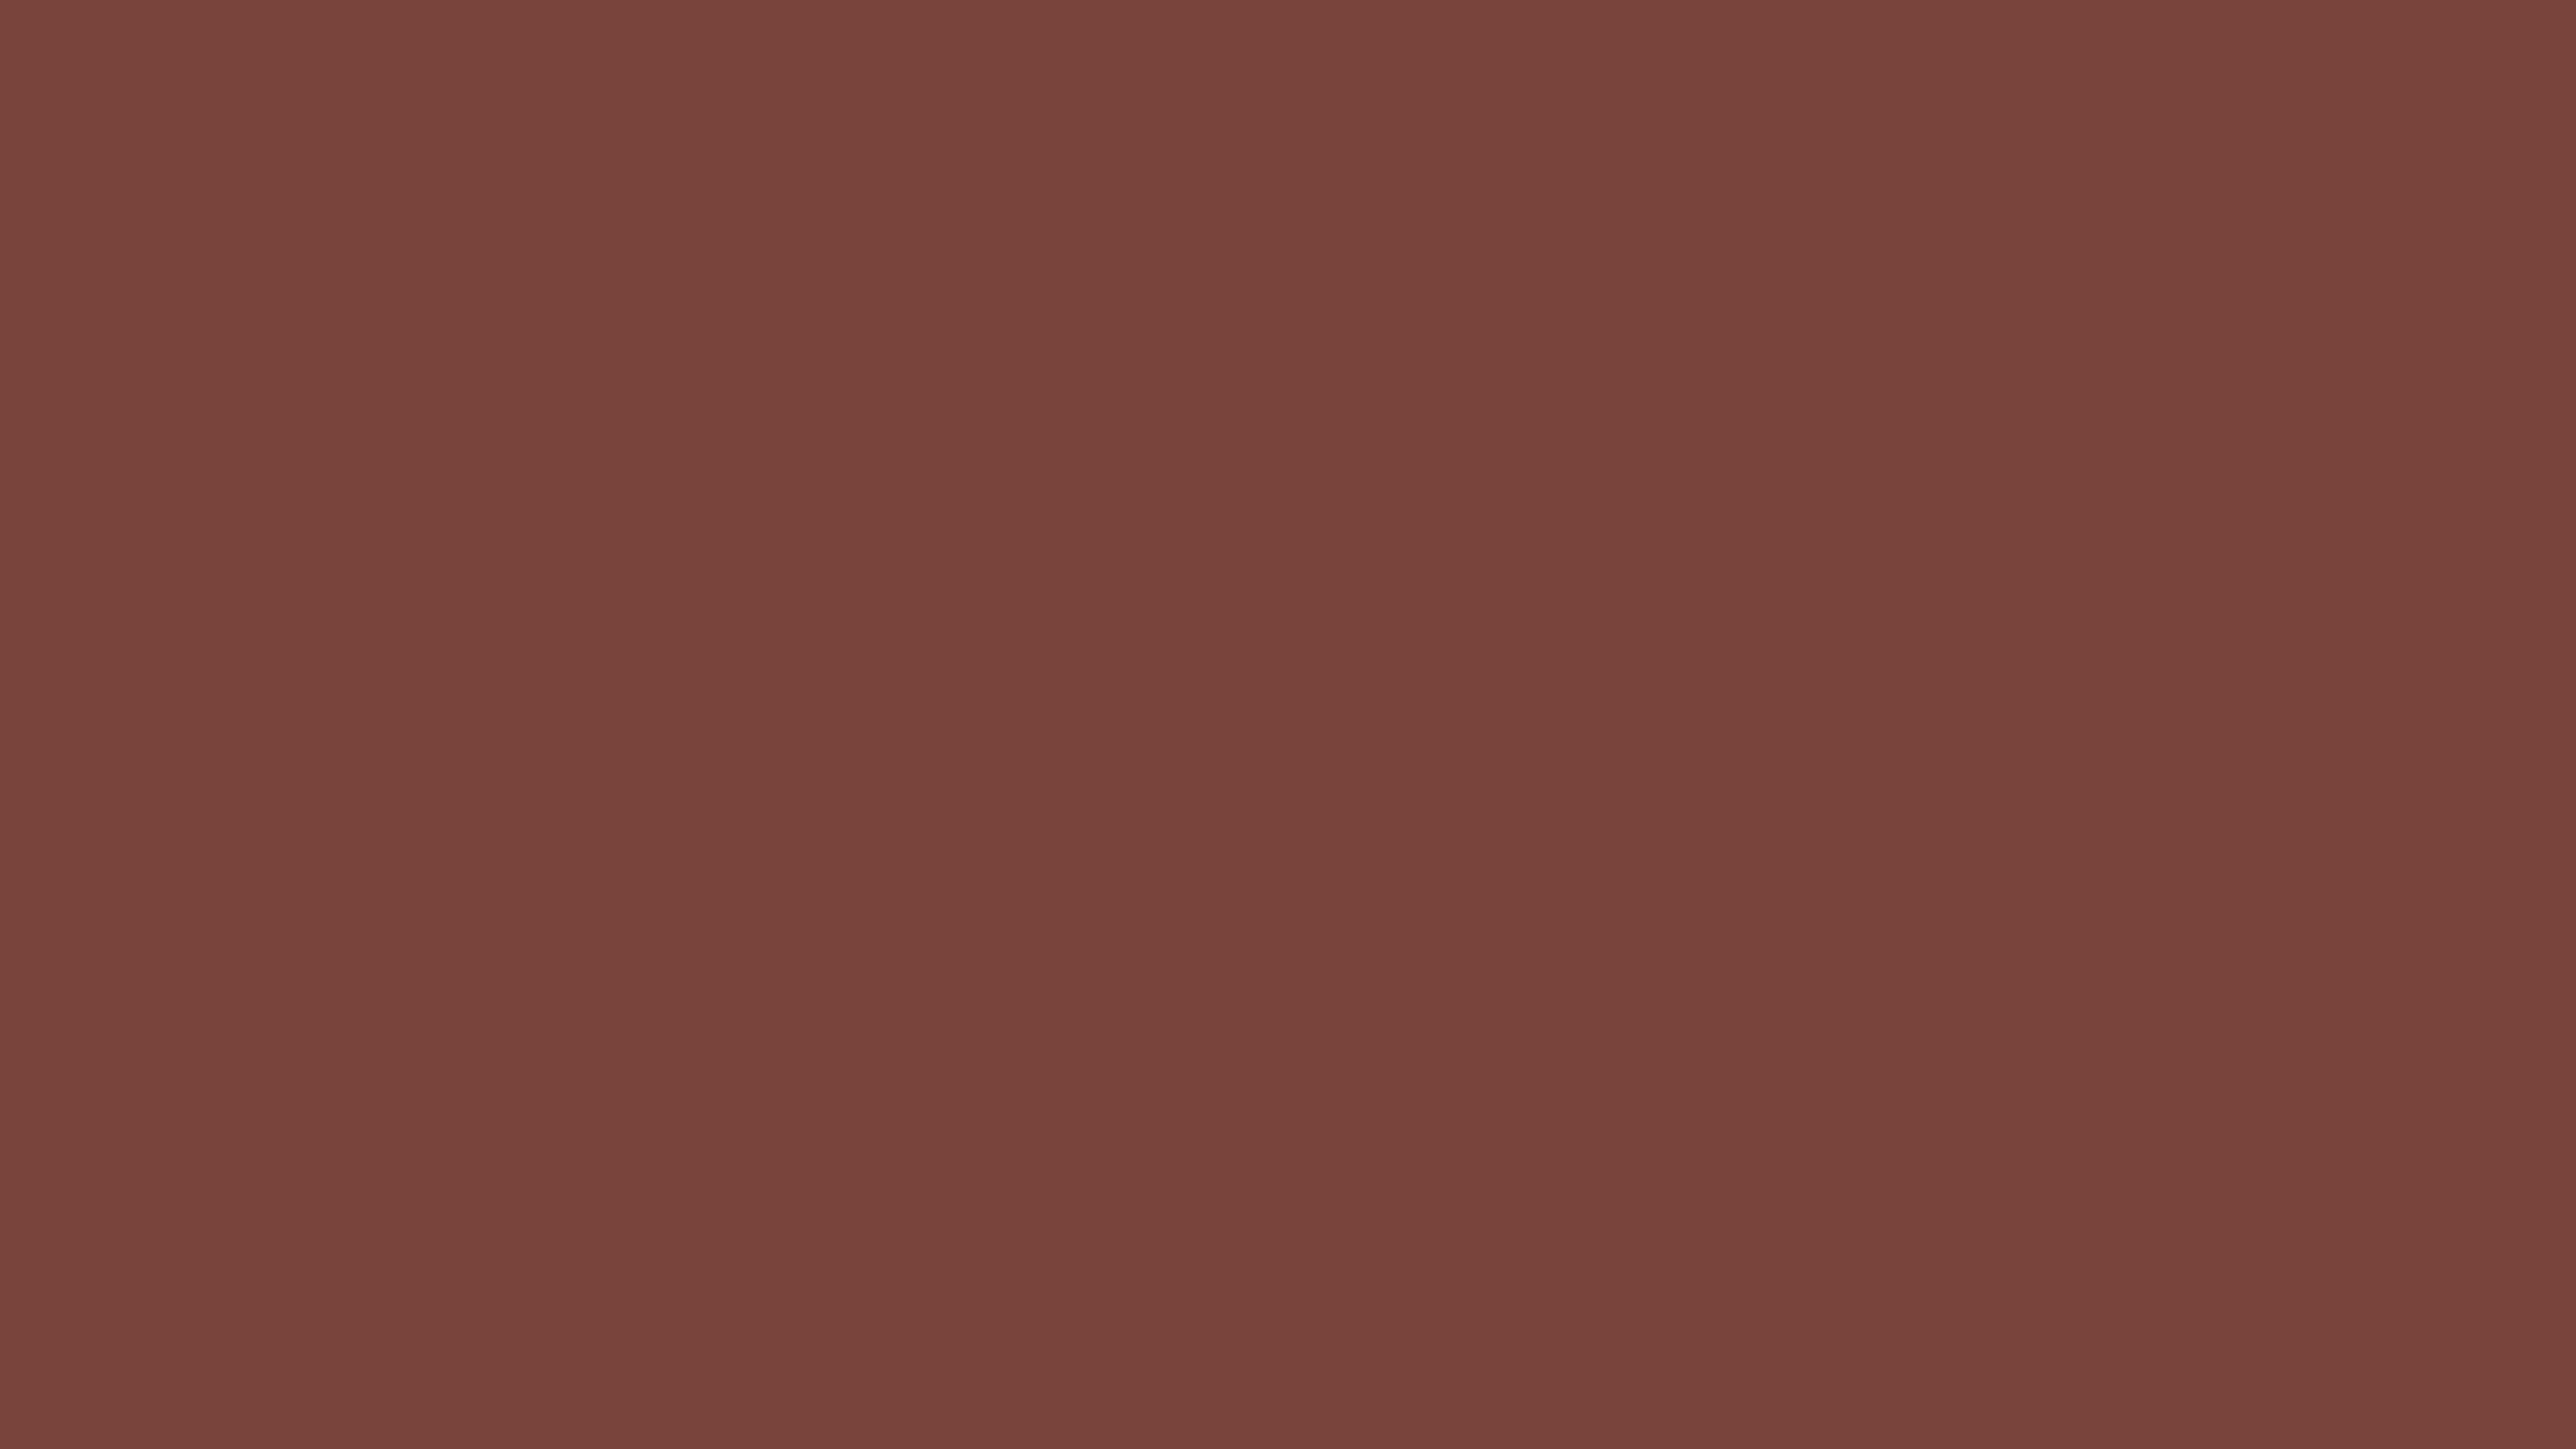 5120x2880 Bole Solid Color Background